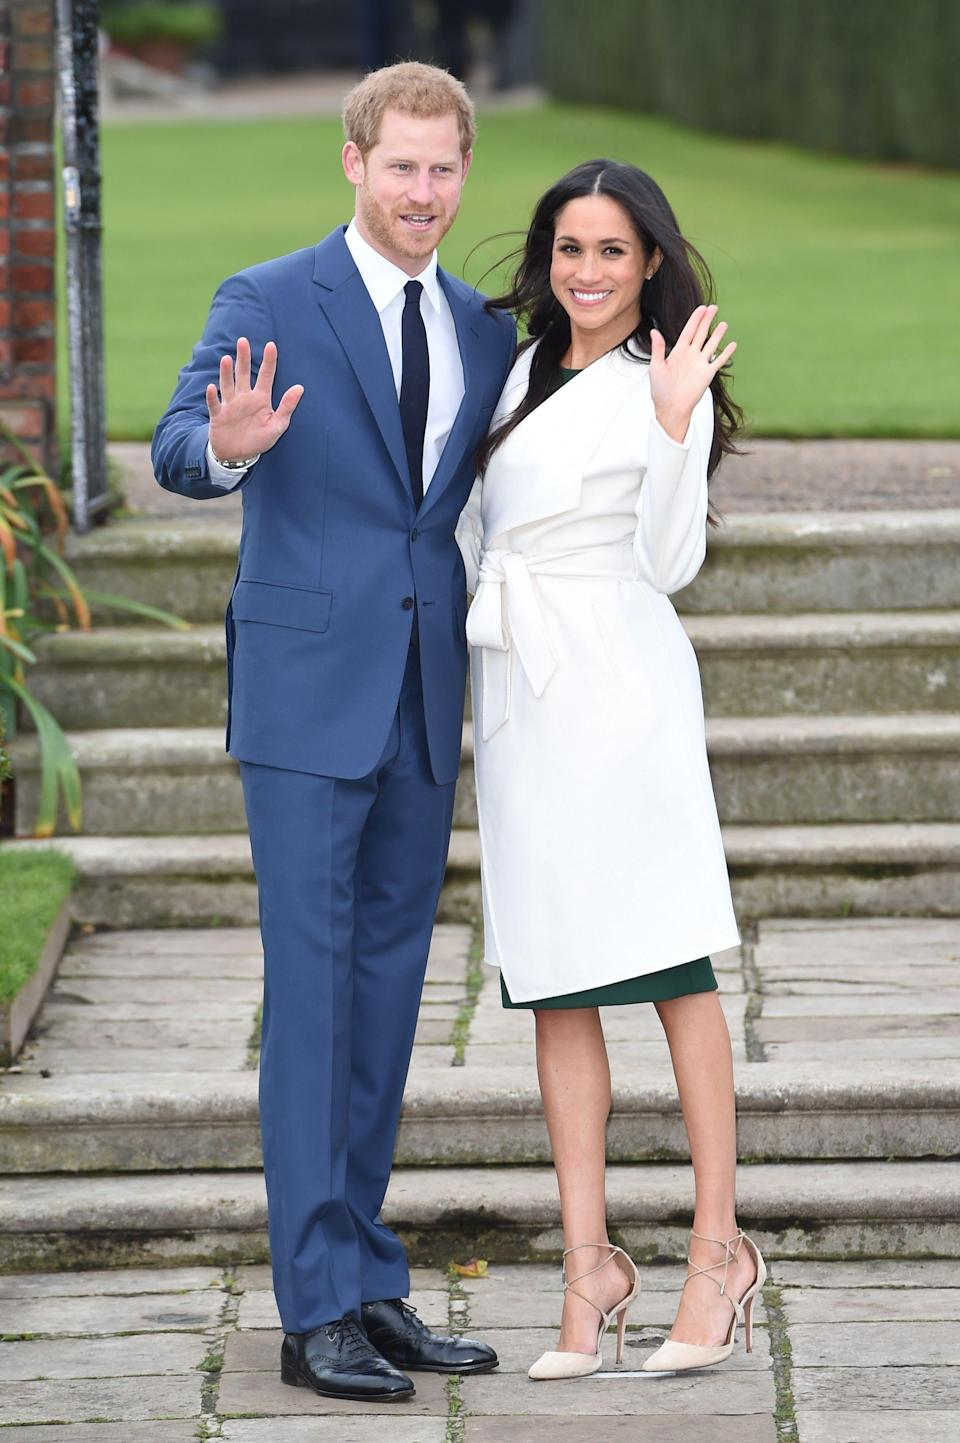 Meghan Markle wears Line The Label for the official royal engagement photos.